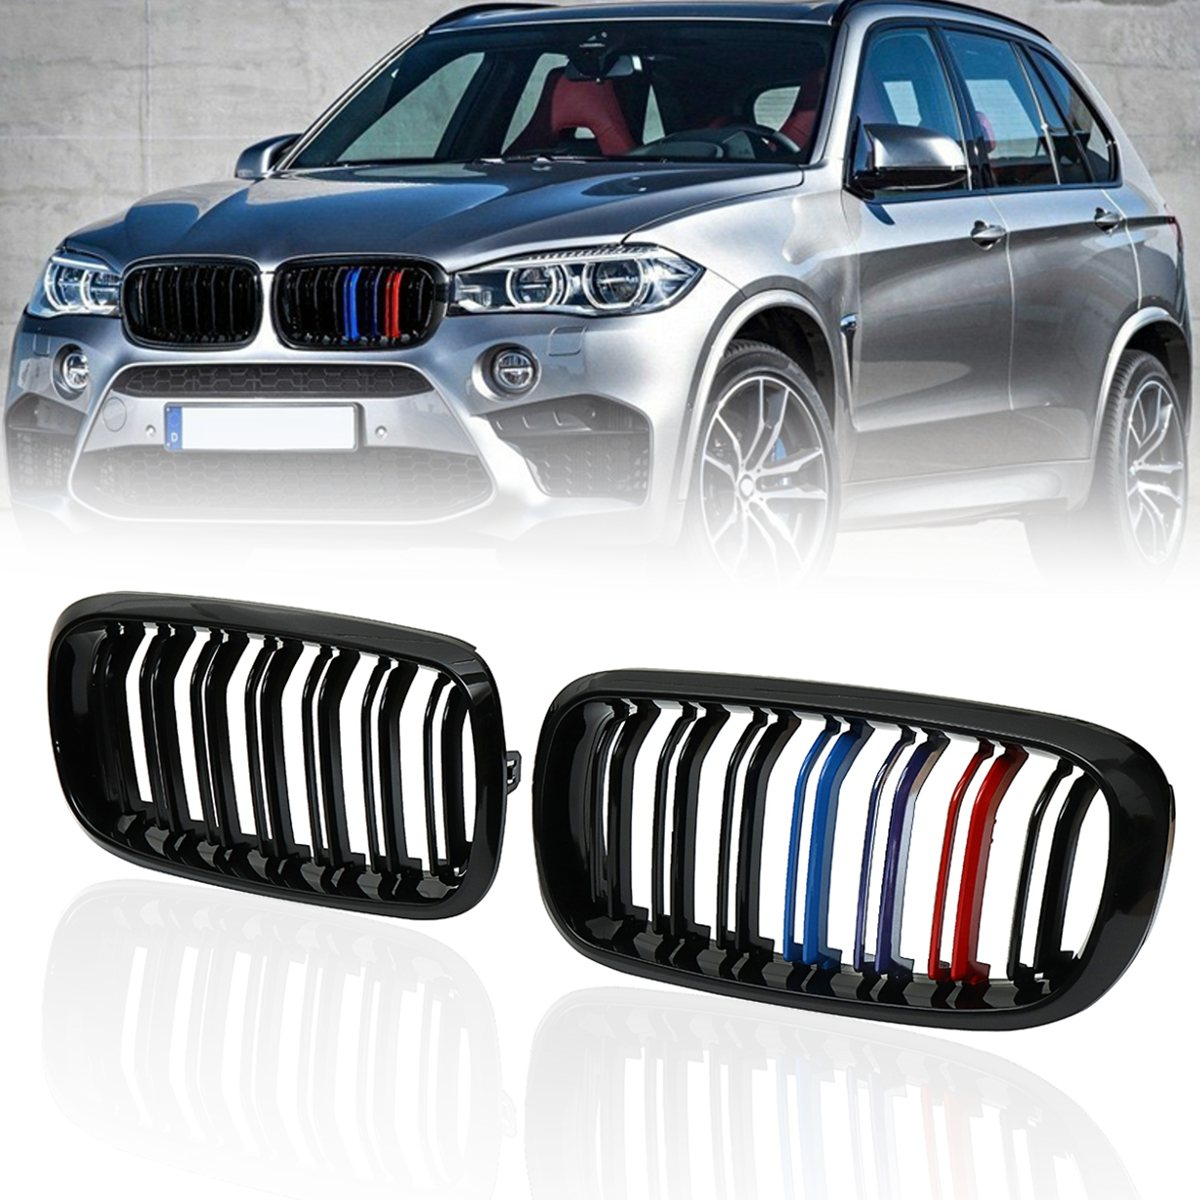 Pair Matte Gloss Black M Color Front Double Slat Kidney Grille For BMW F86 F15 F16 X5 X6 X5M F85 X6M F86 2014 2015 2016 2017 x5 x6 m performance sport design m color front grill dual slat kidney custom auto grille fit for bmw 2015 2016 f15 f16 suv